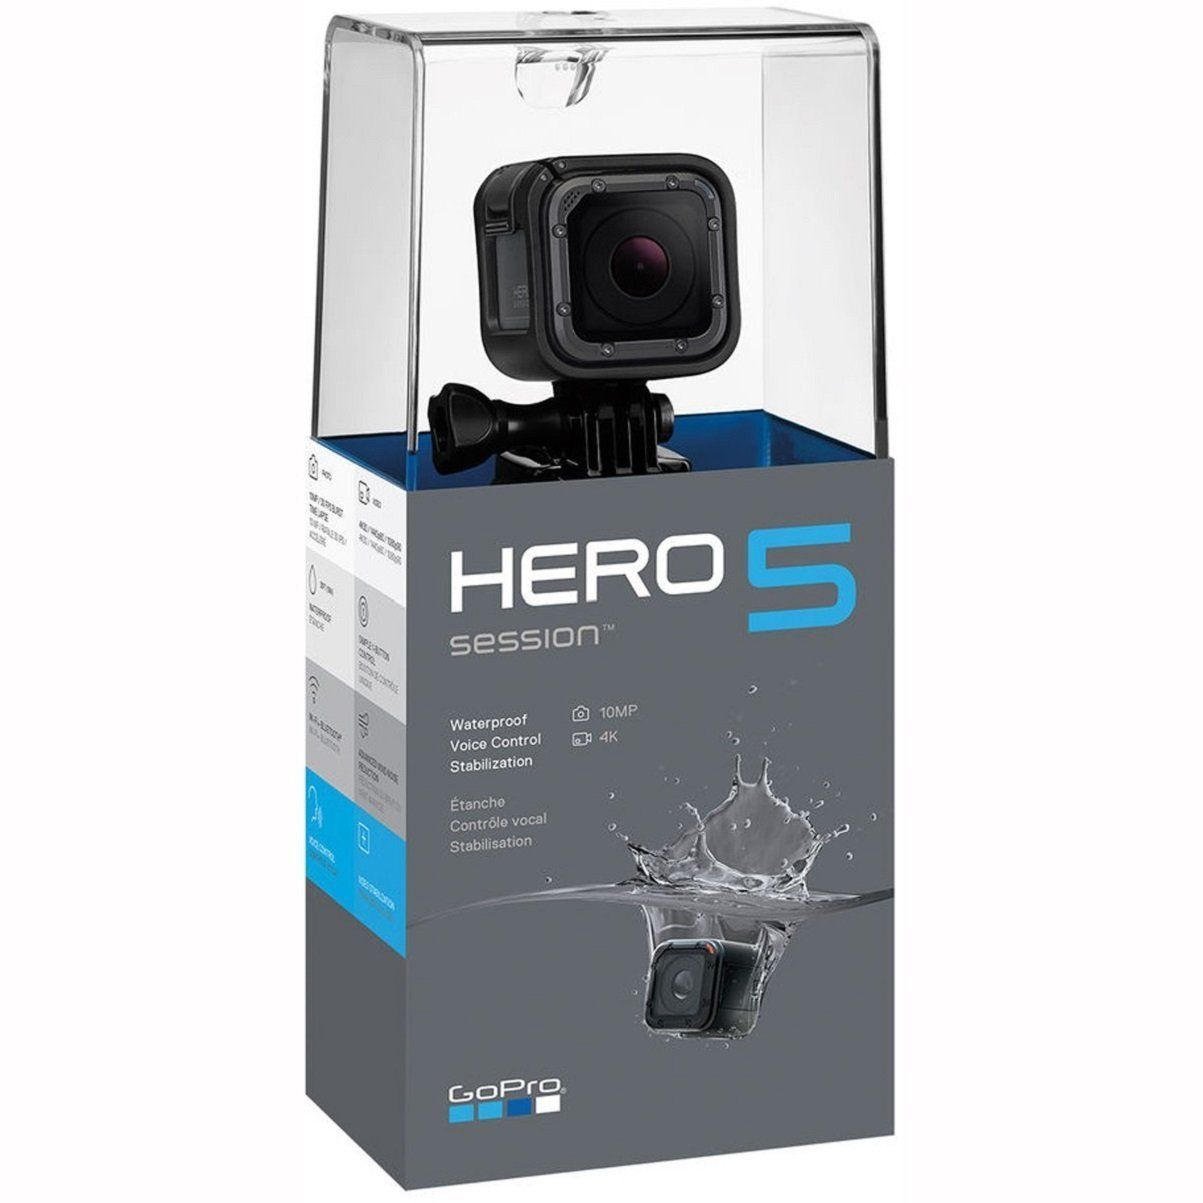 GoPro Hero5 Session Model 4K Extraordinarily HD, Wi-Fi Waterproof Movement Digicam -**NEW**